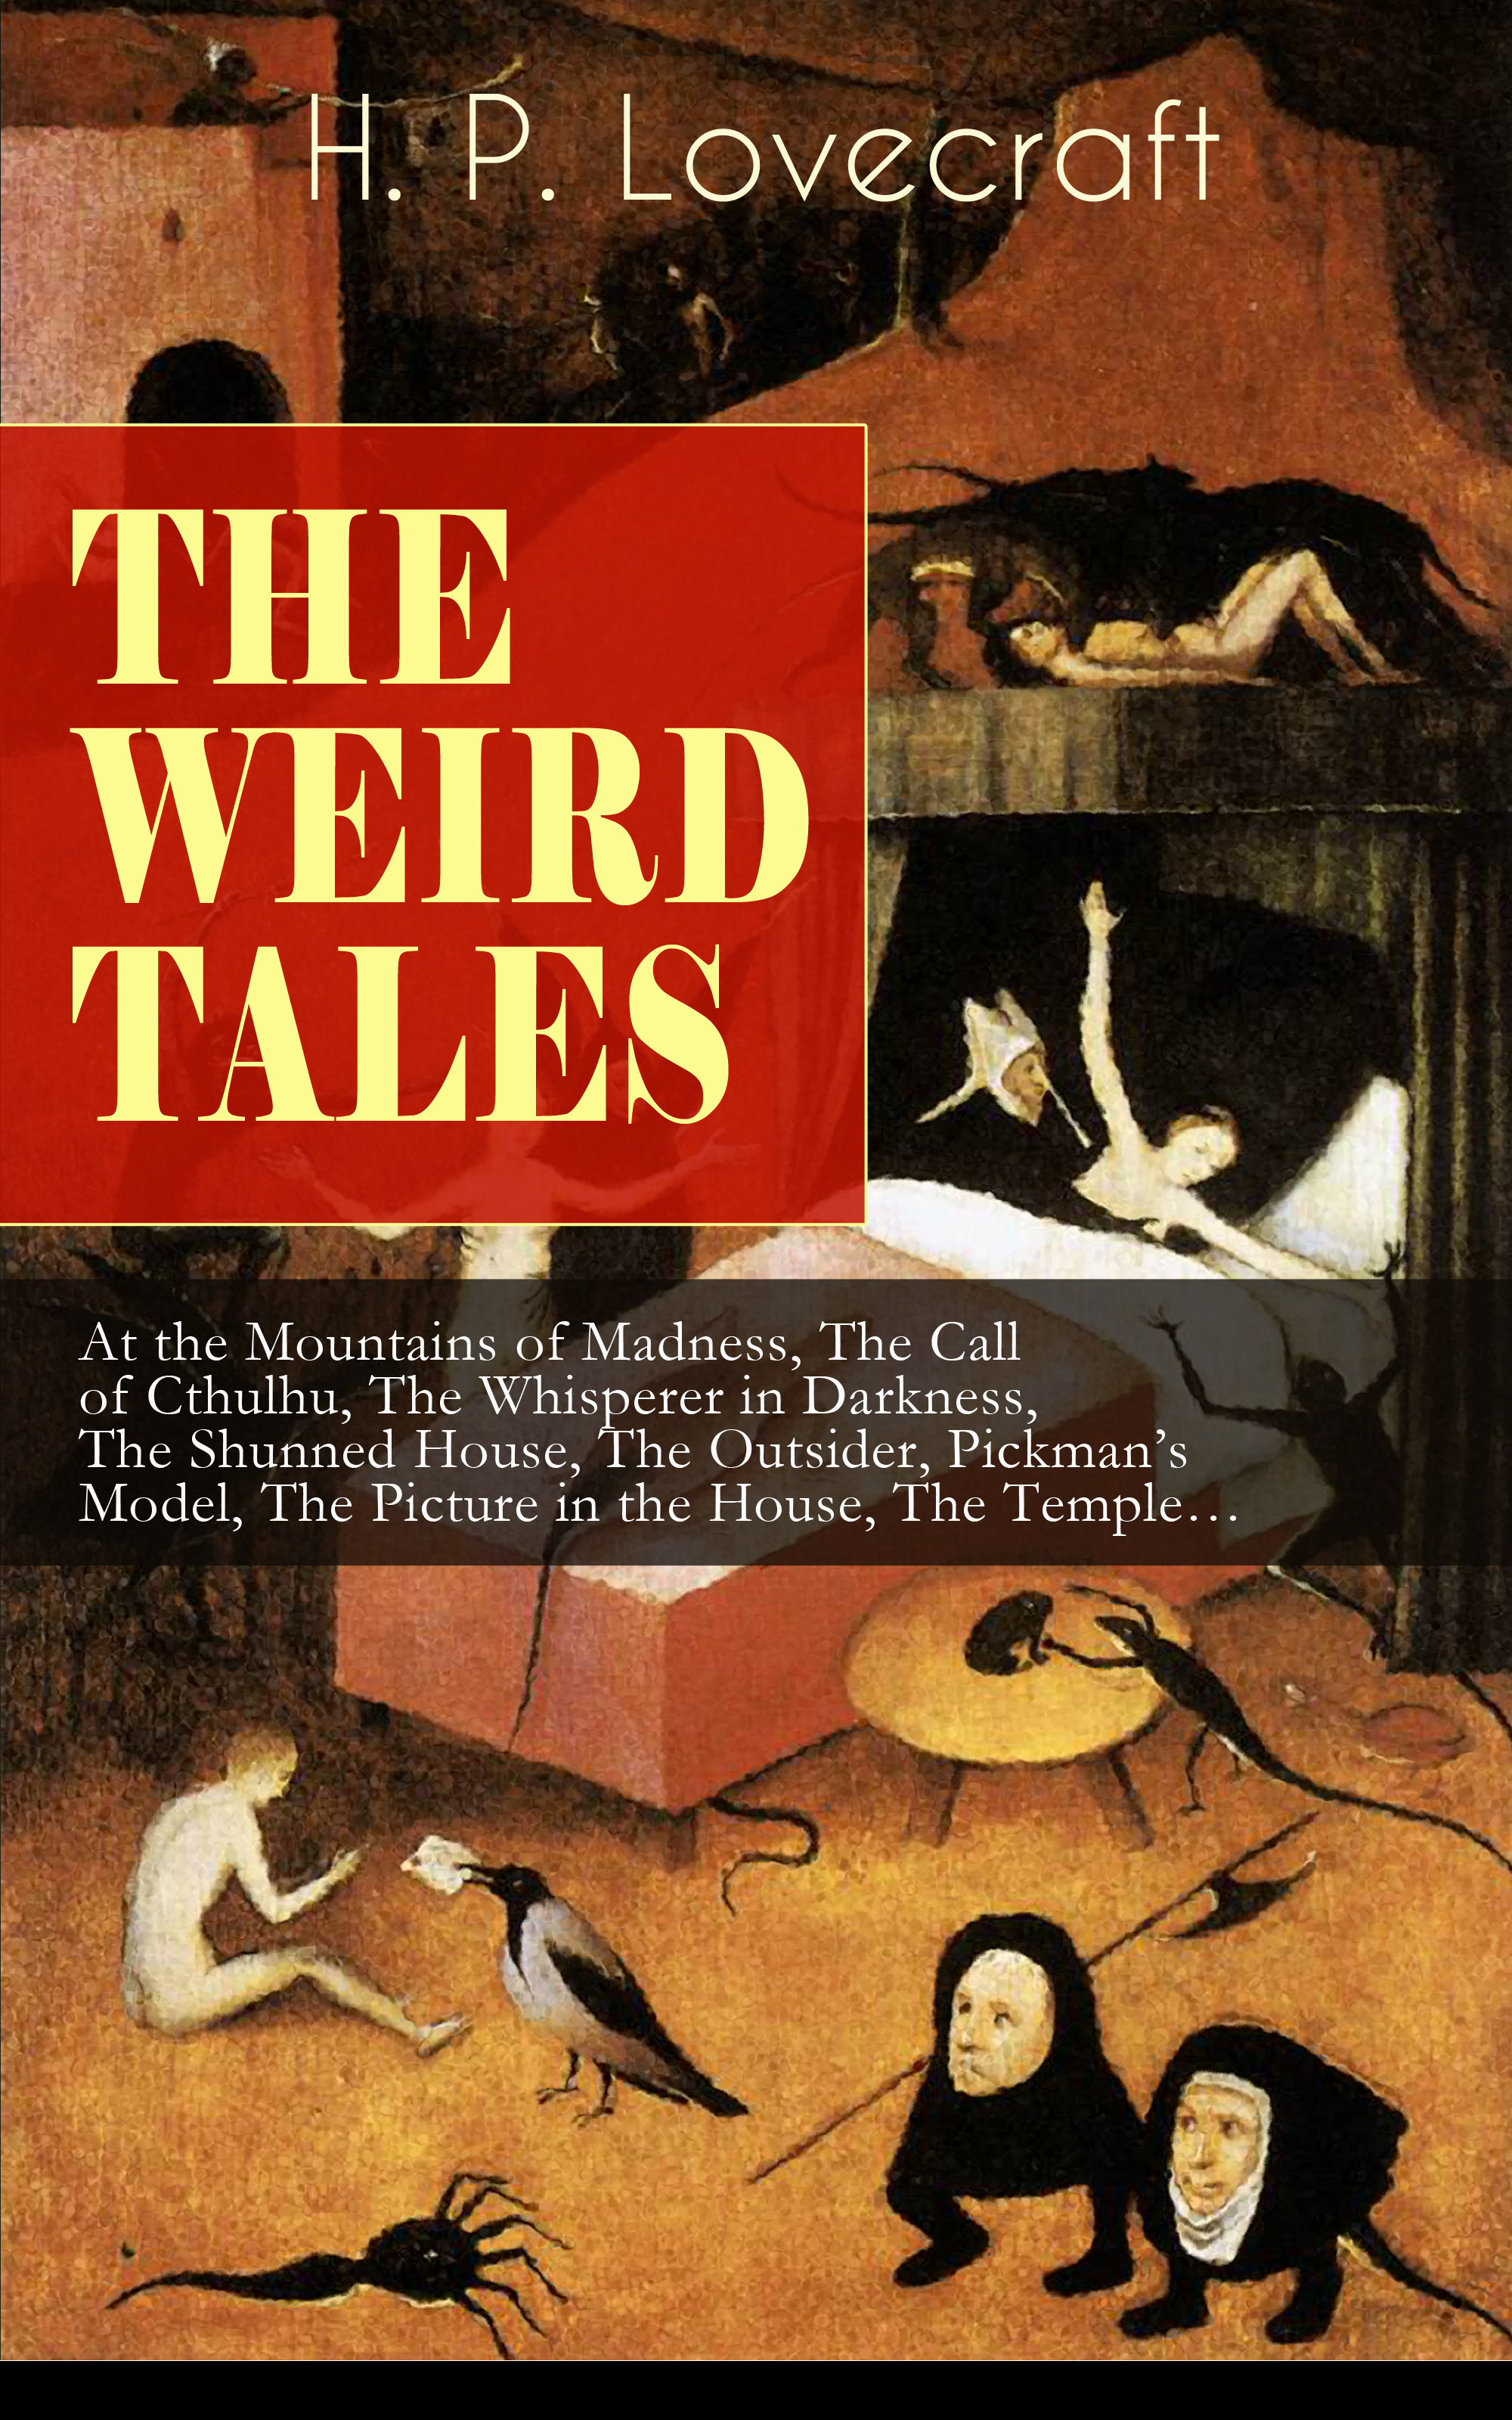 H. P. Lovecraft THE WEIRD TALES of H. P. Lovecraft h p lovecraft the complete fiction of h p lovecraft